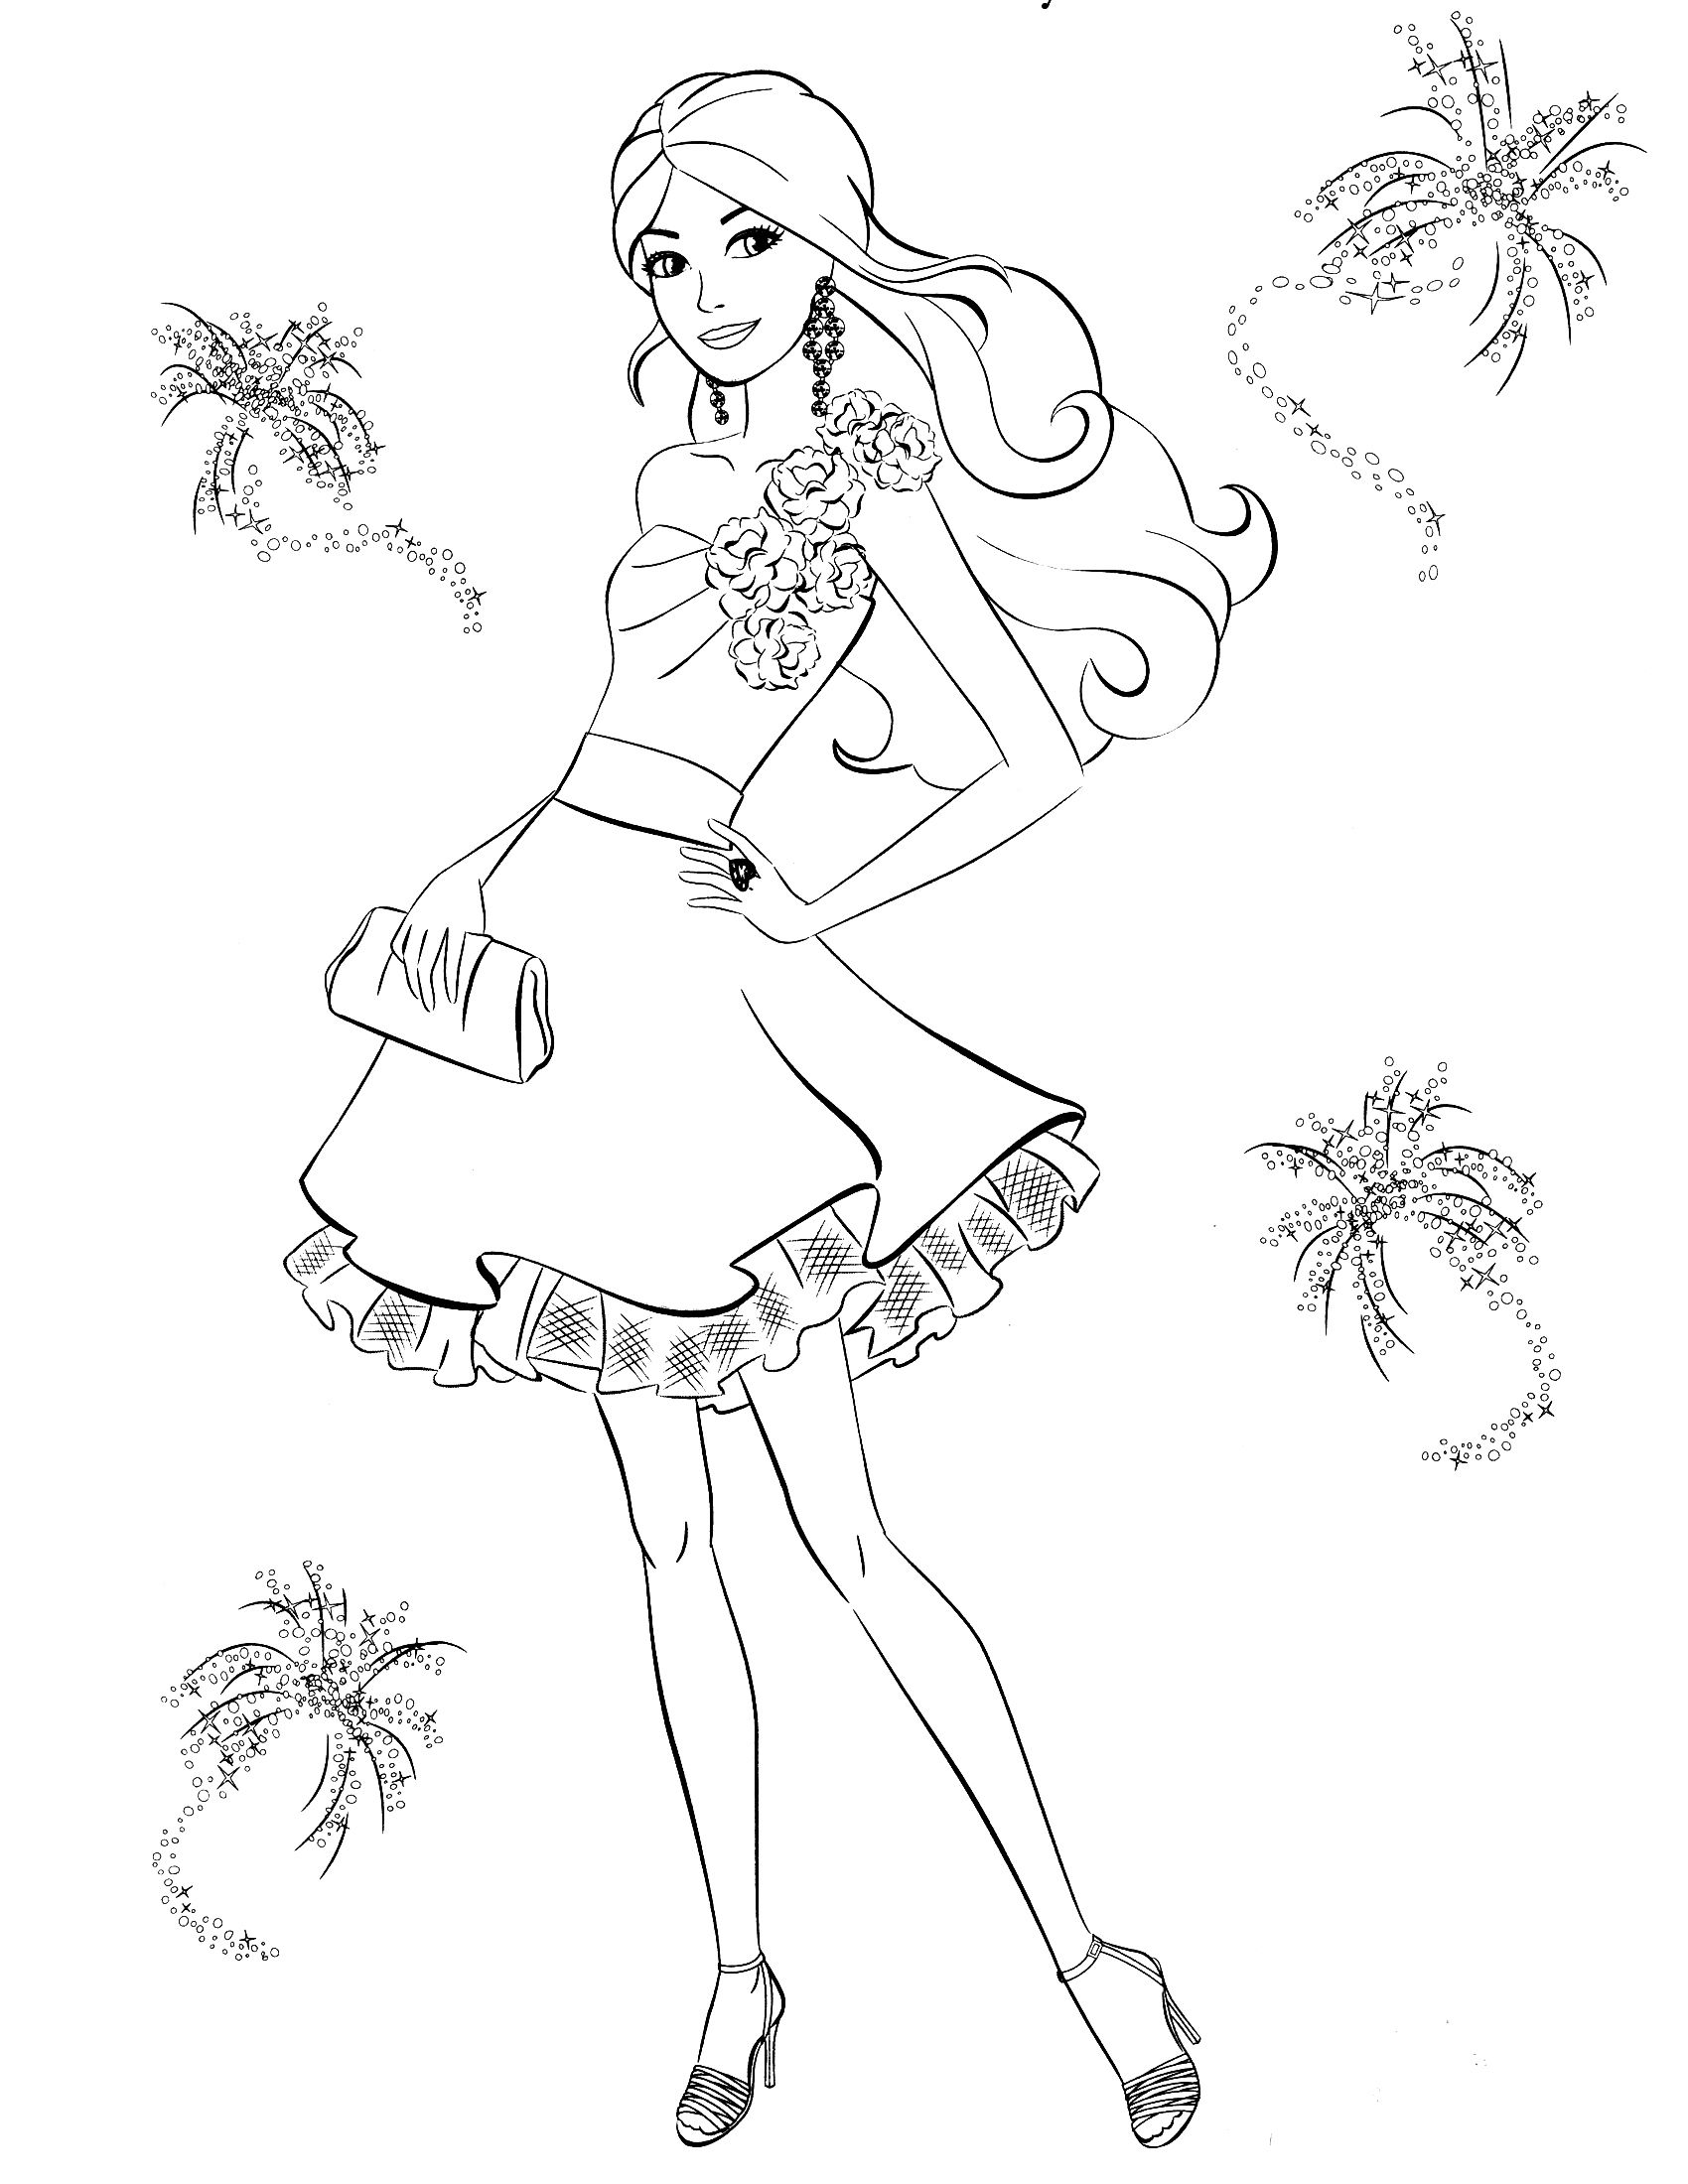 Free Barbie Colouring Pages #4 | coloring | Pinterest | Barbie ...